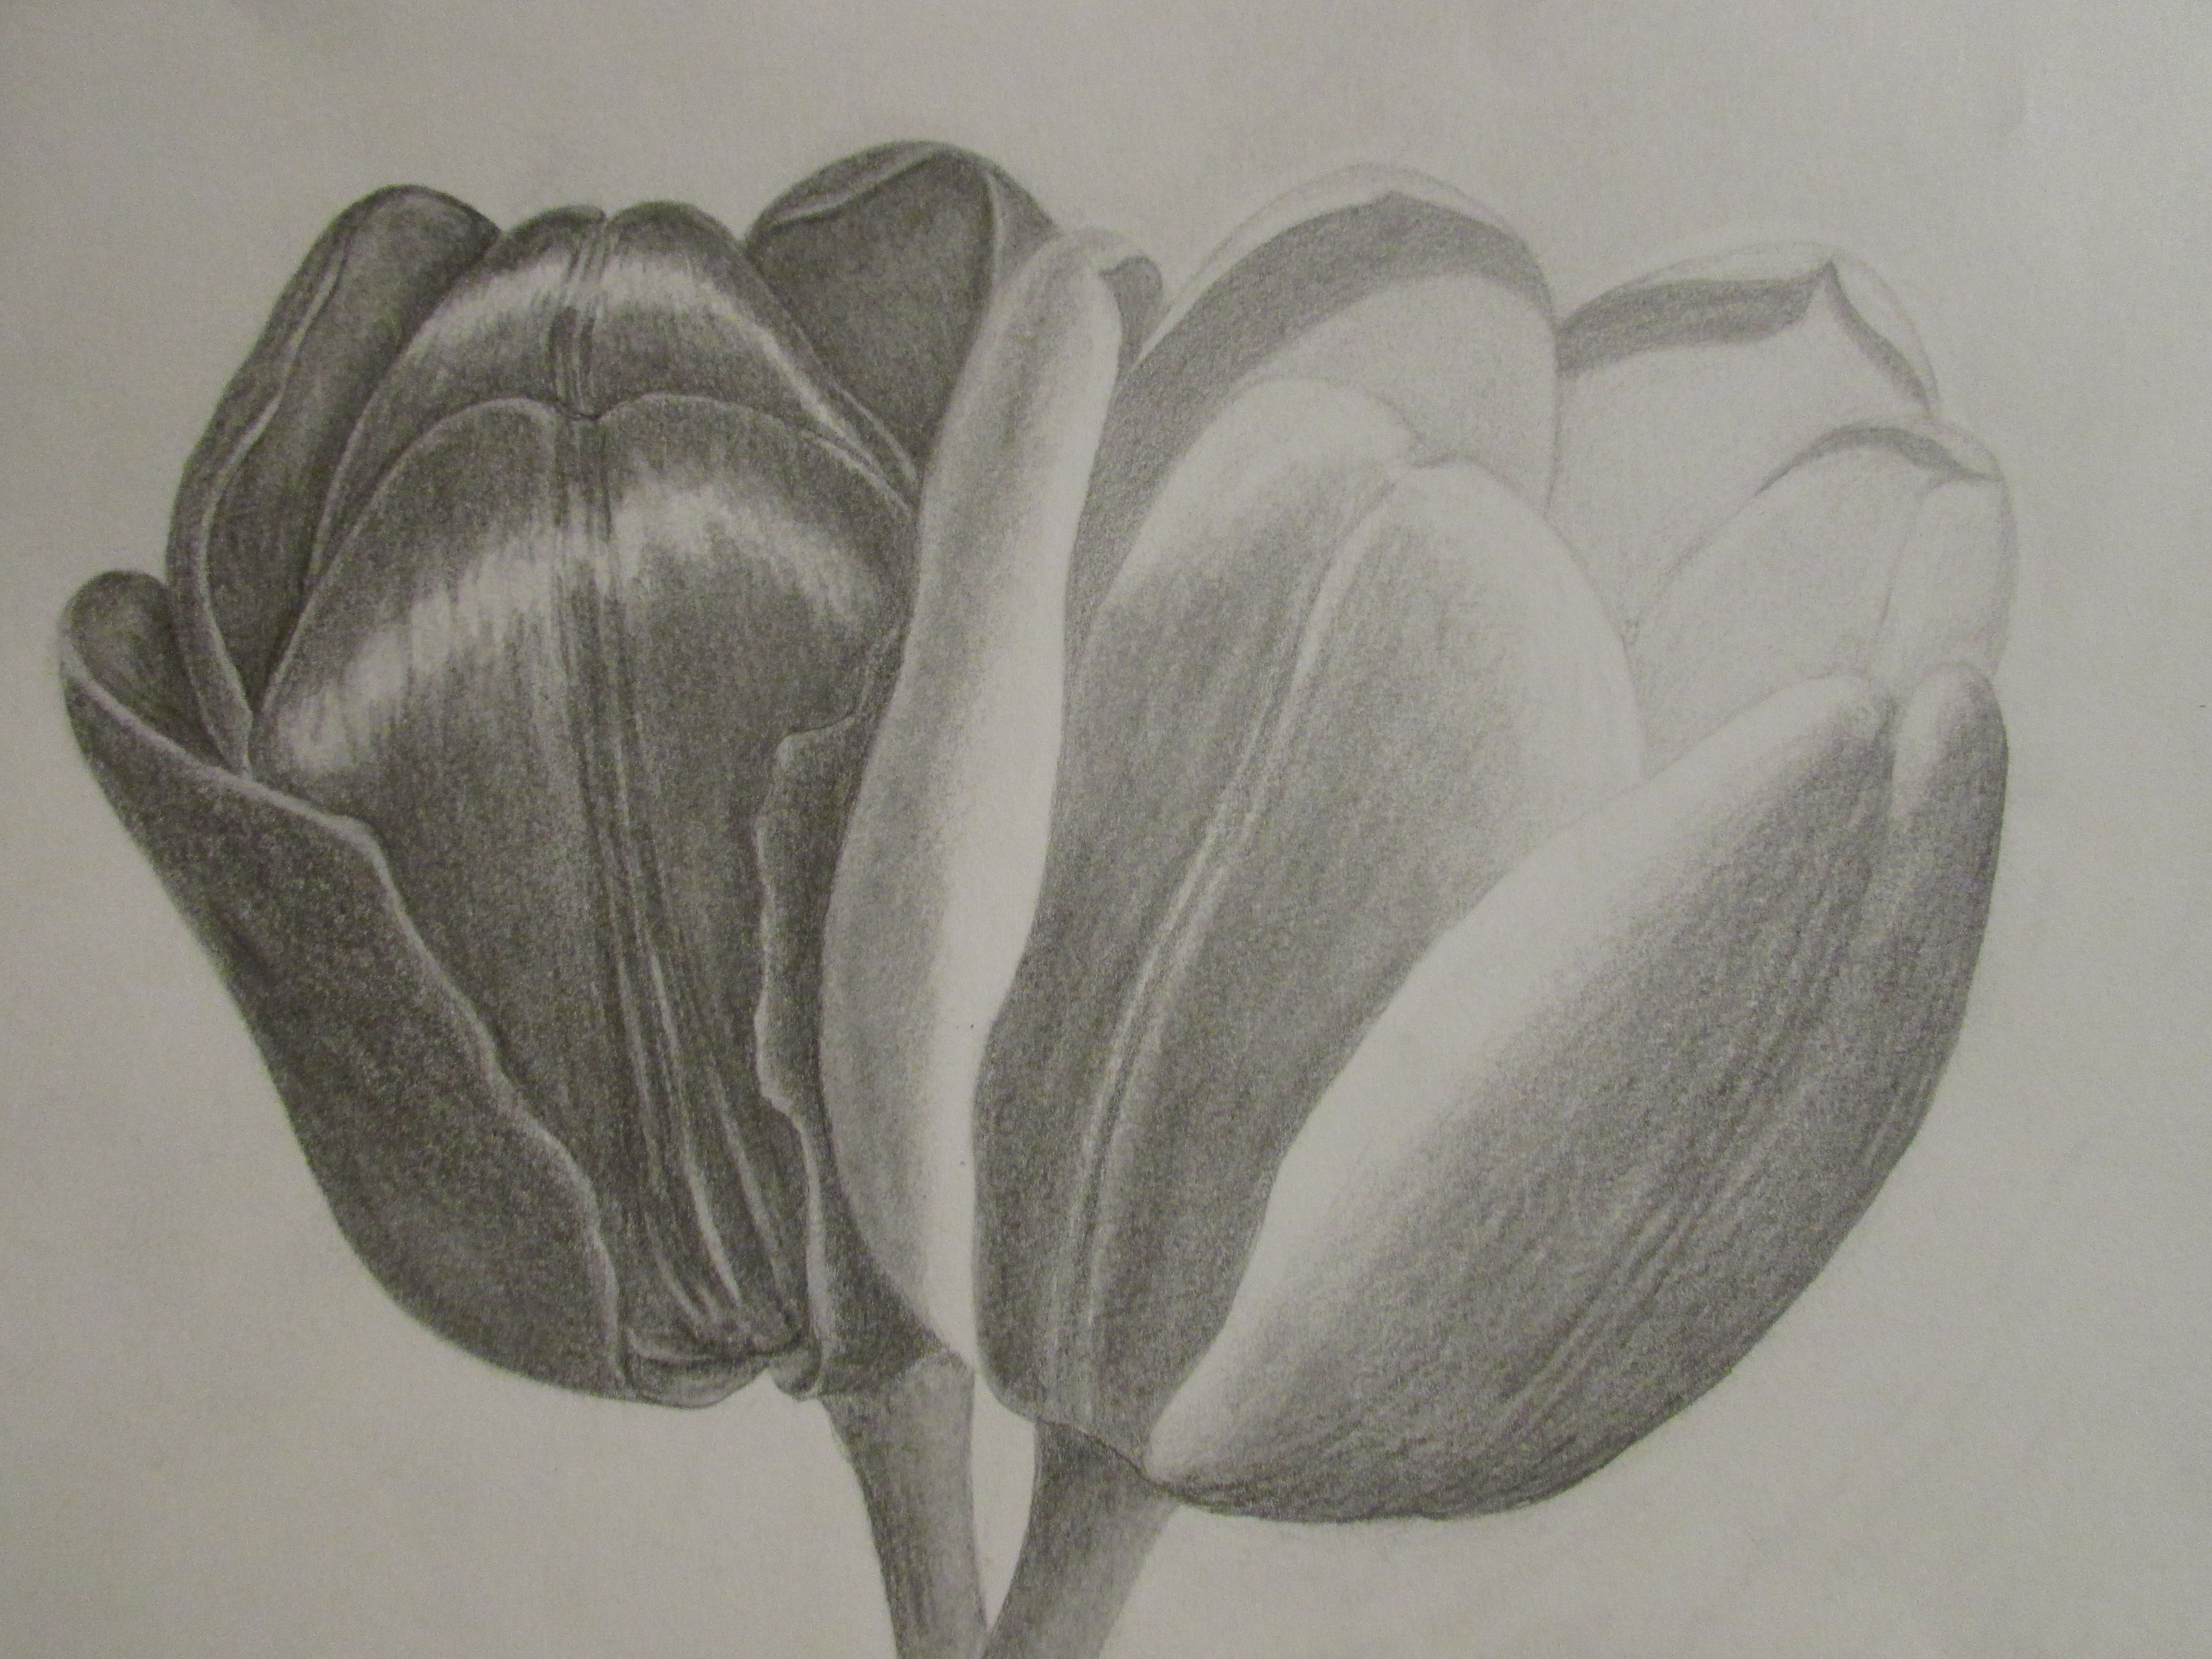 4608x3456 Pencil Shading Sketches Flowers Pencil Shading Of Flowers